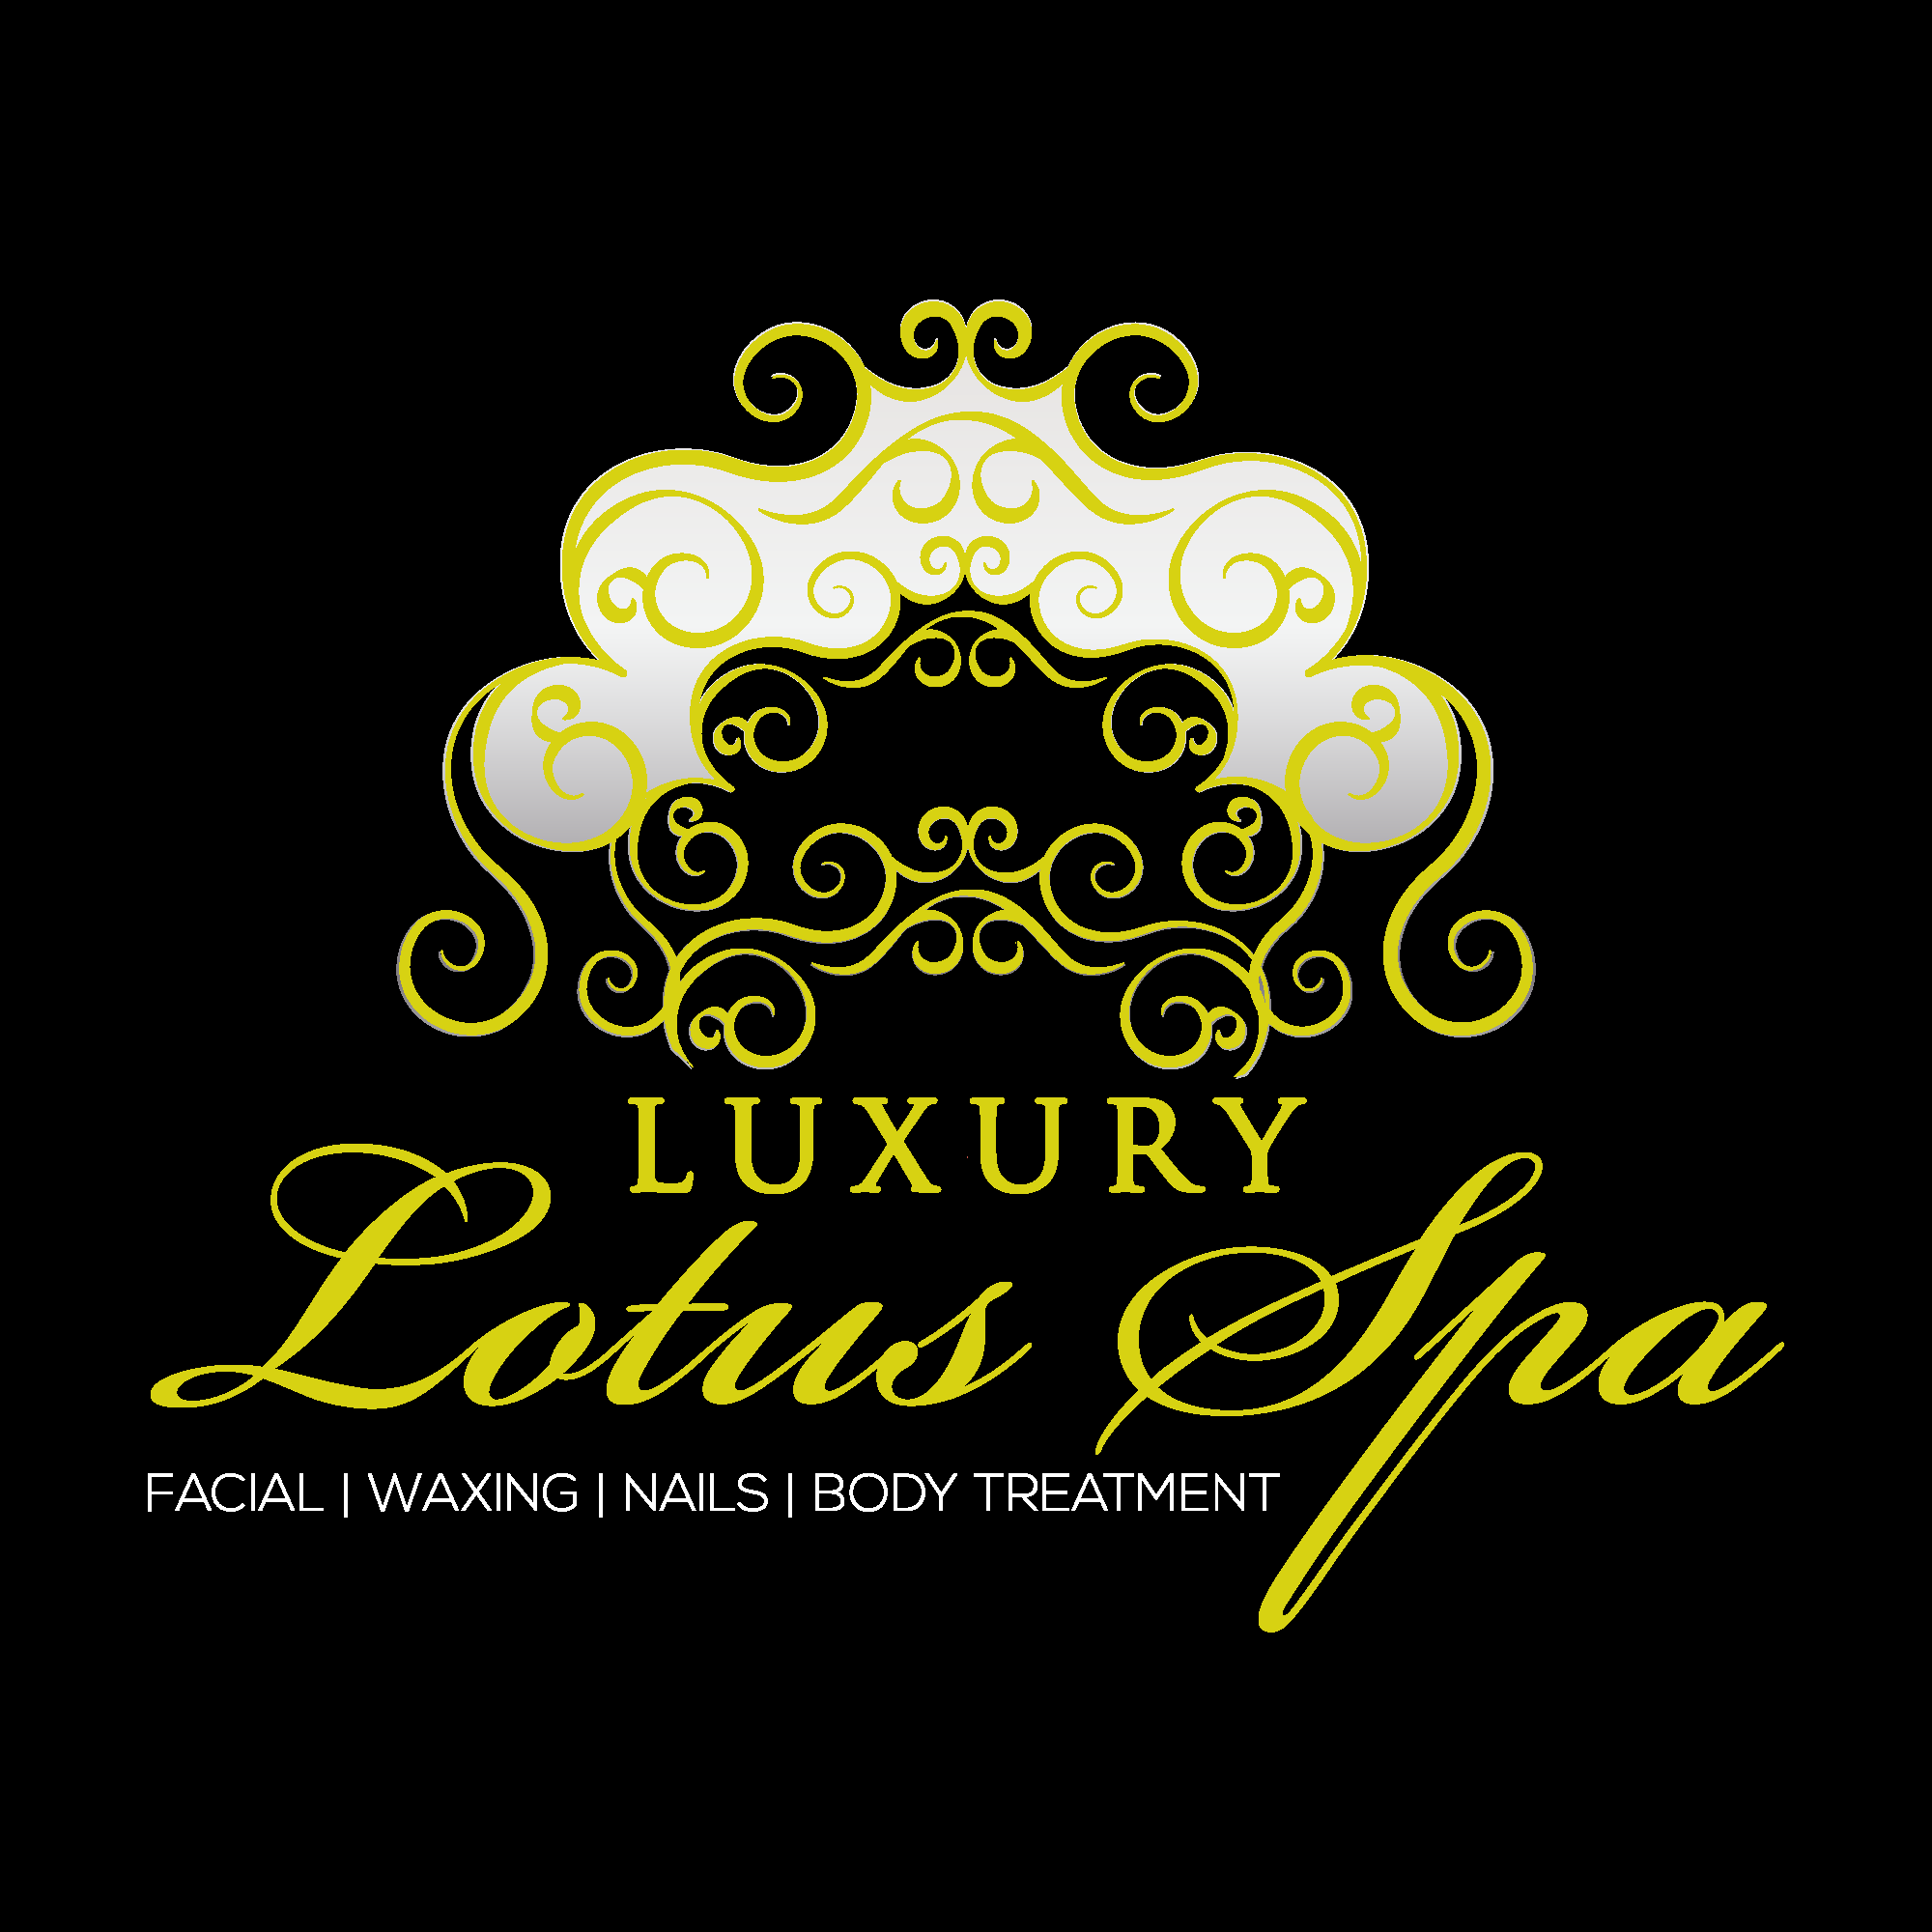 Luxury Lotus Spa image